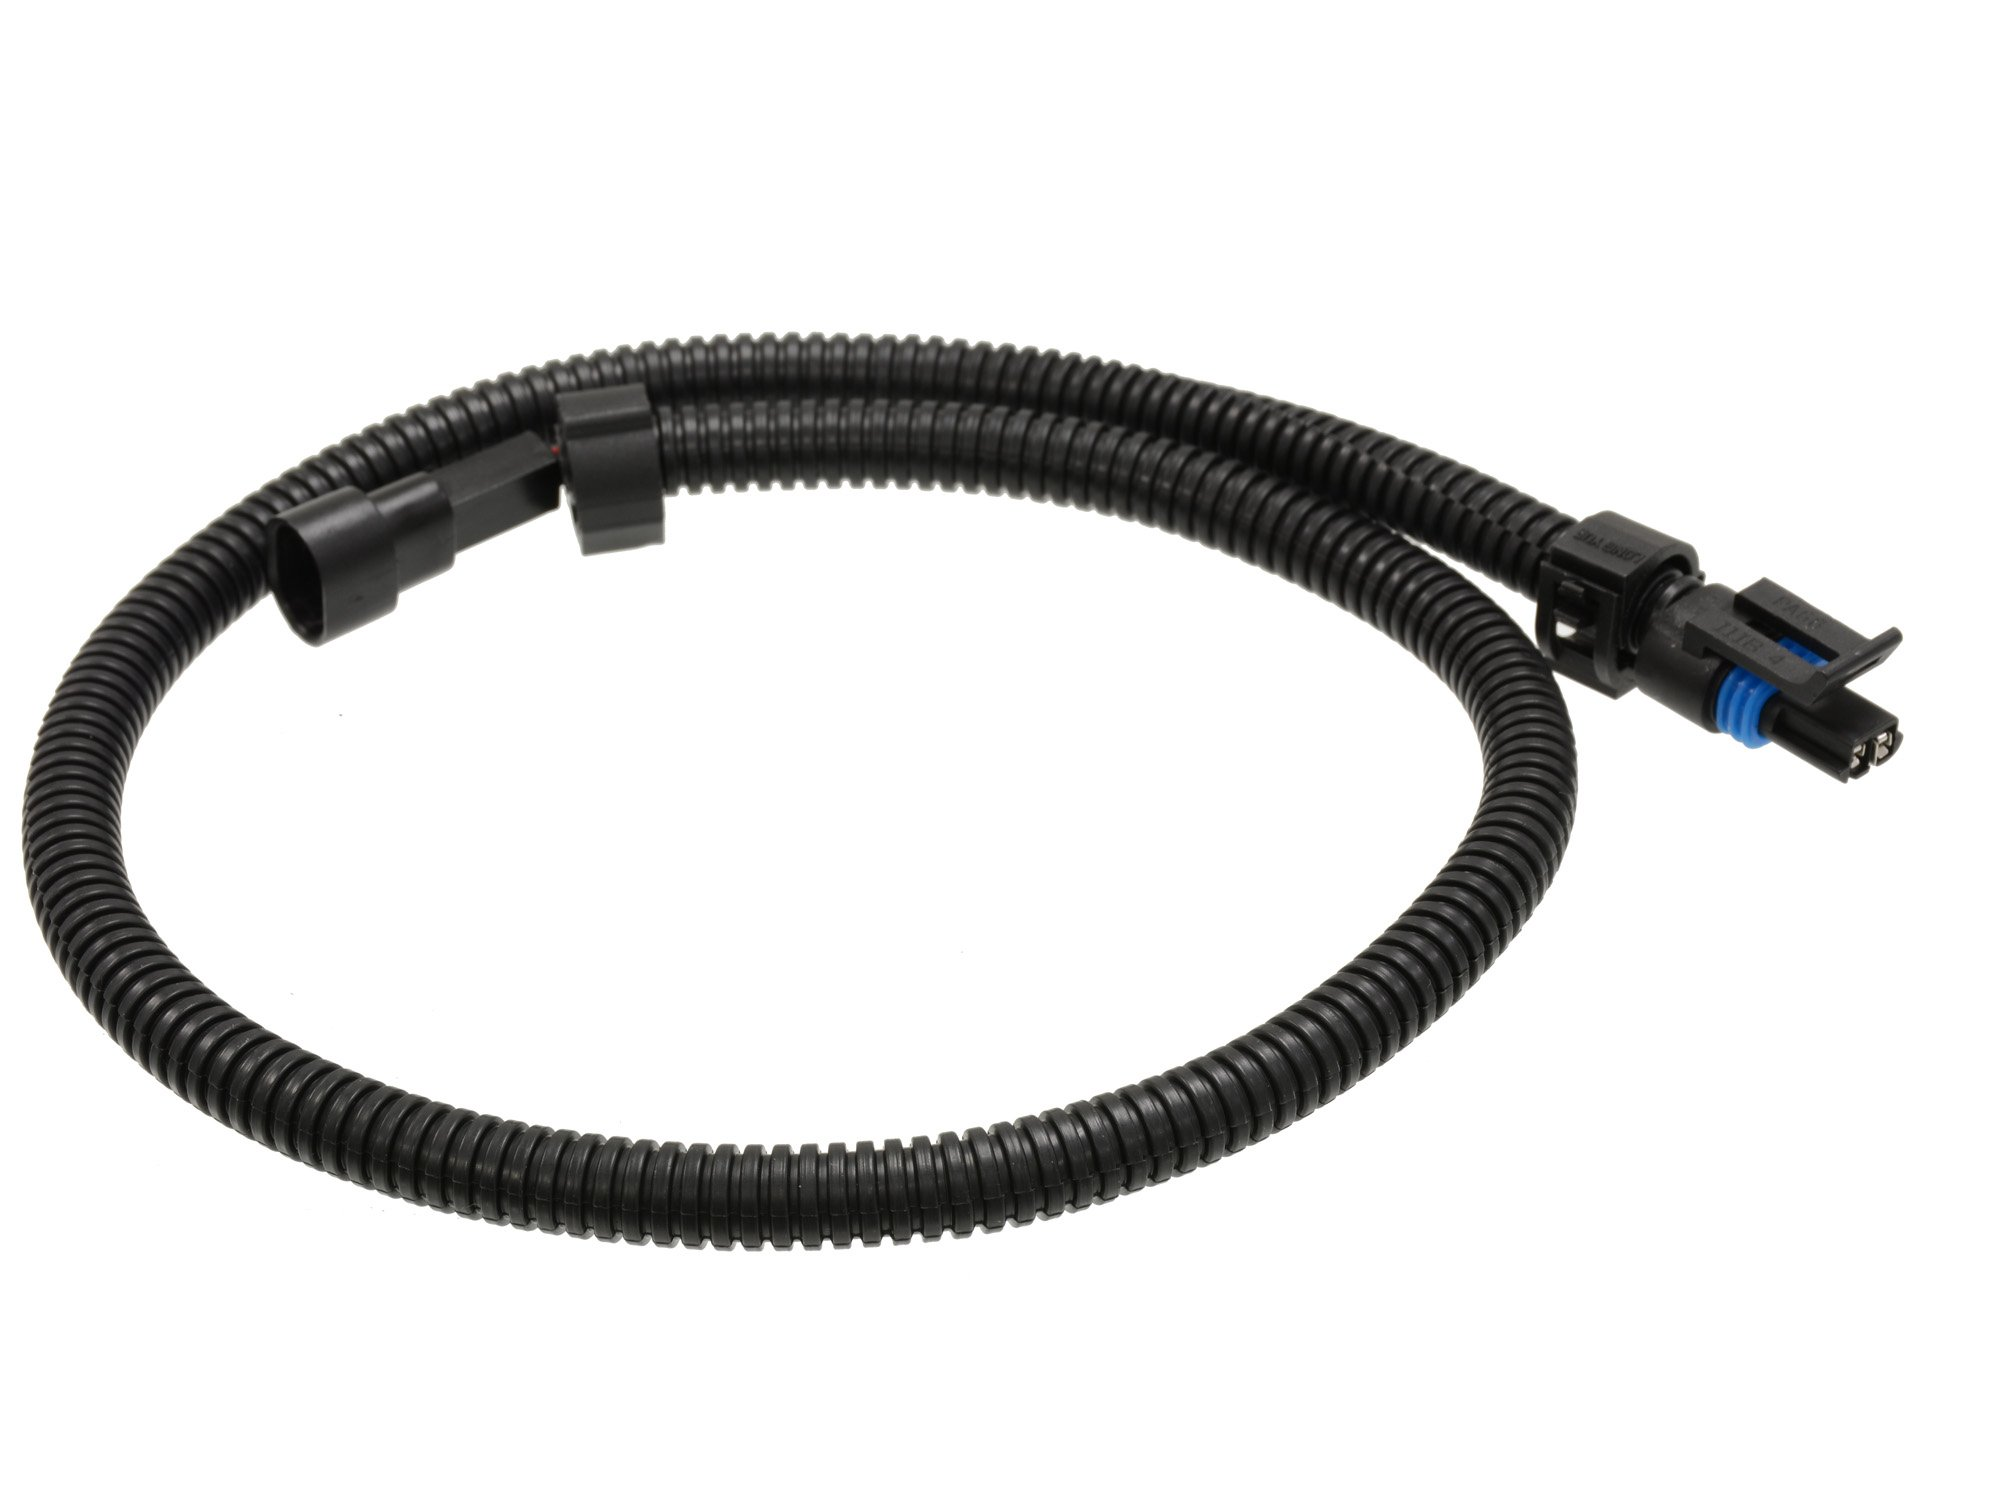 Cheap Ls1 Wiring Find Deals On Line At Alibabacom Painless Lt1 Harness Get Quotations Michigan Motorsports 24 Coolant Temperature Sensor Extension Fits Most 2 Wire Tpi Tbi